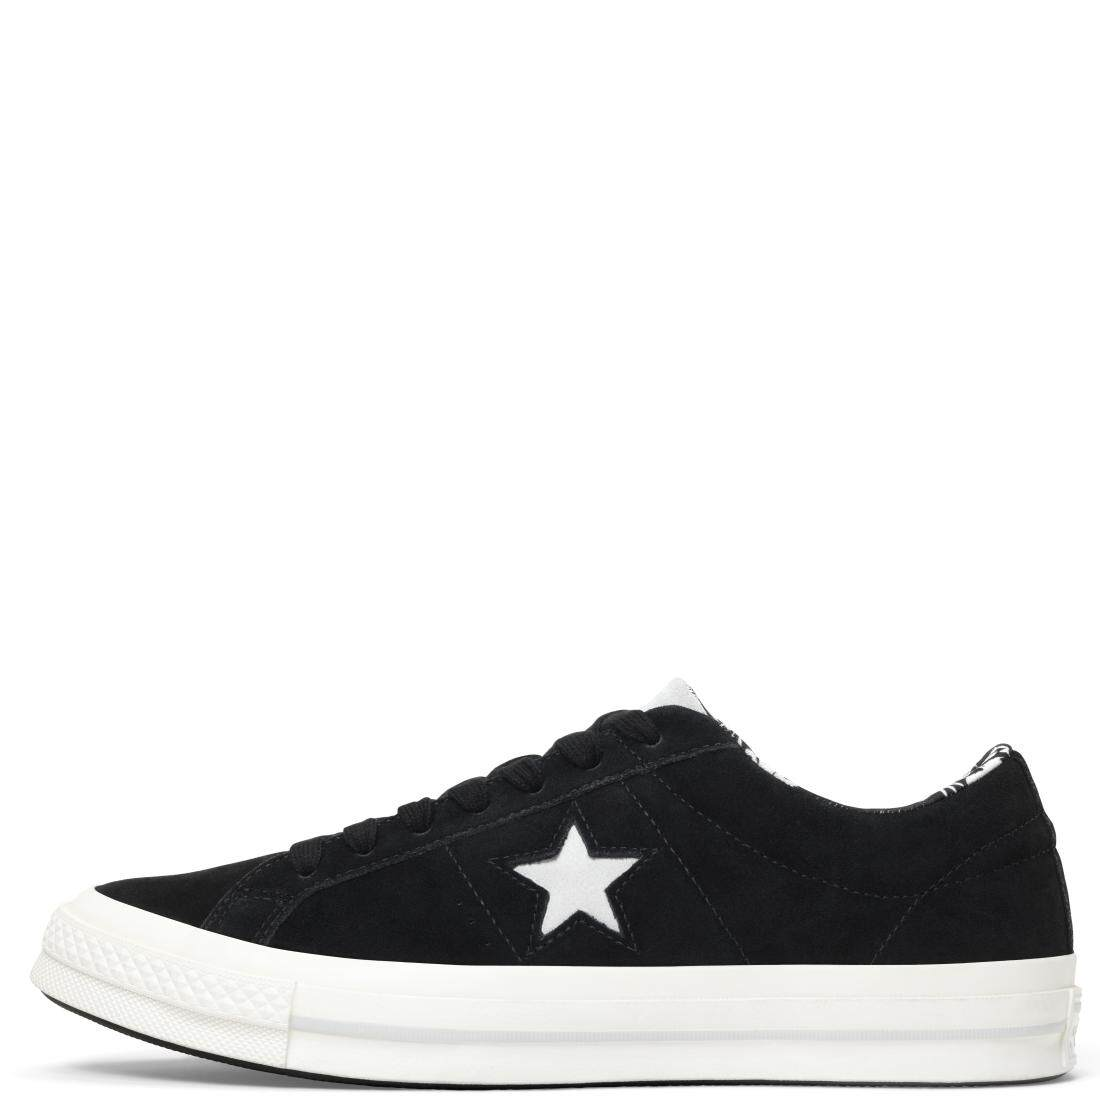 CONVERSE ONE STAR OX BLACK/MOUSE/ EGRET 160584C ...